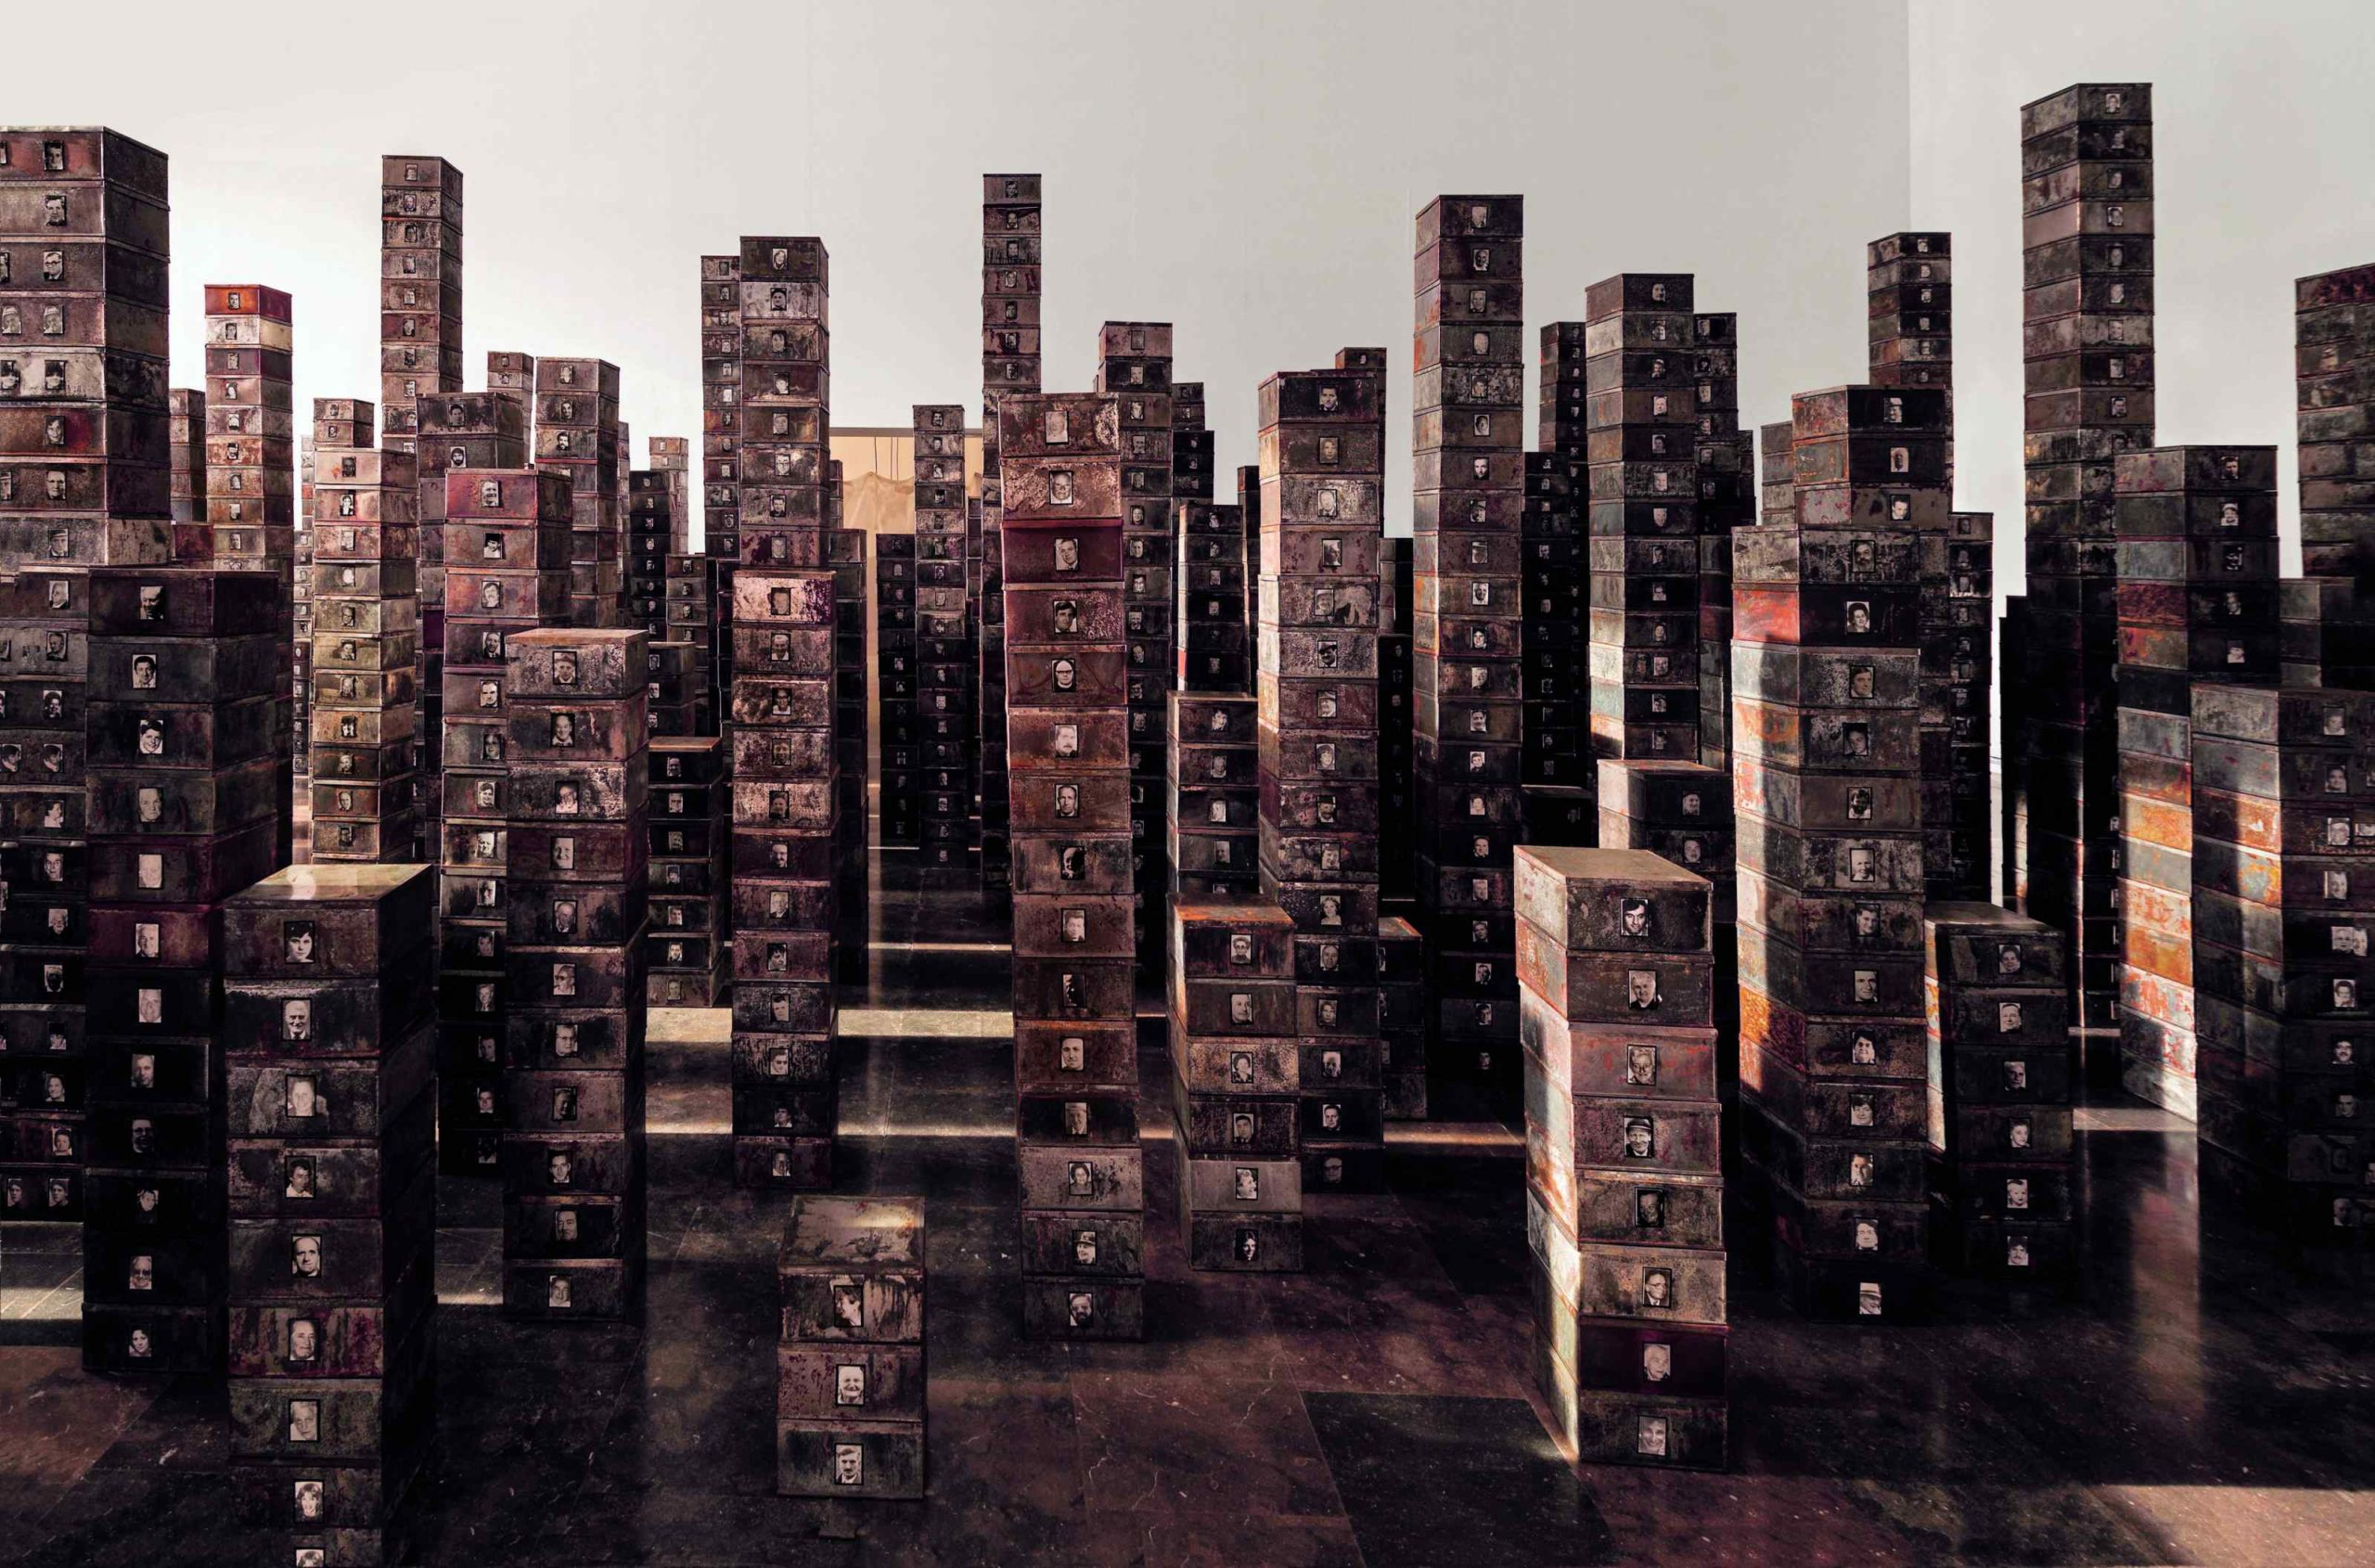 Towers of filing cabinets as part of Christian Boltanski's latest exhibition in Paris.